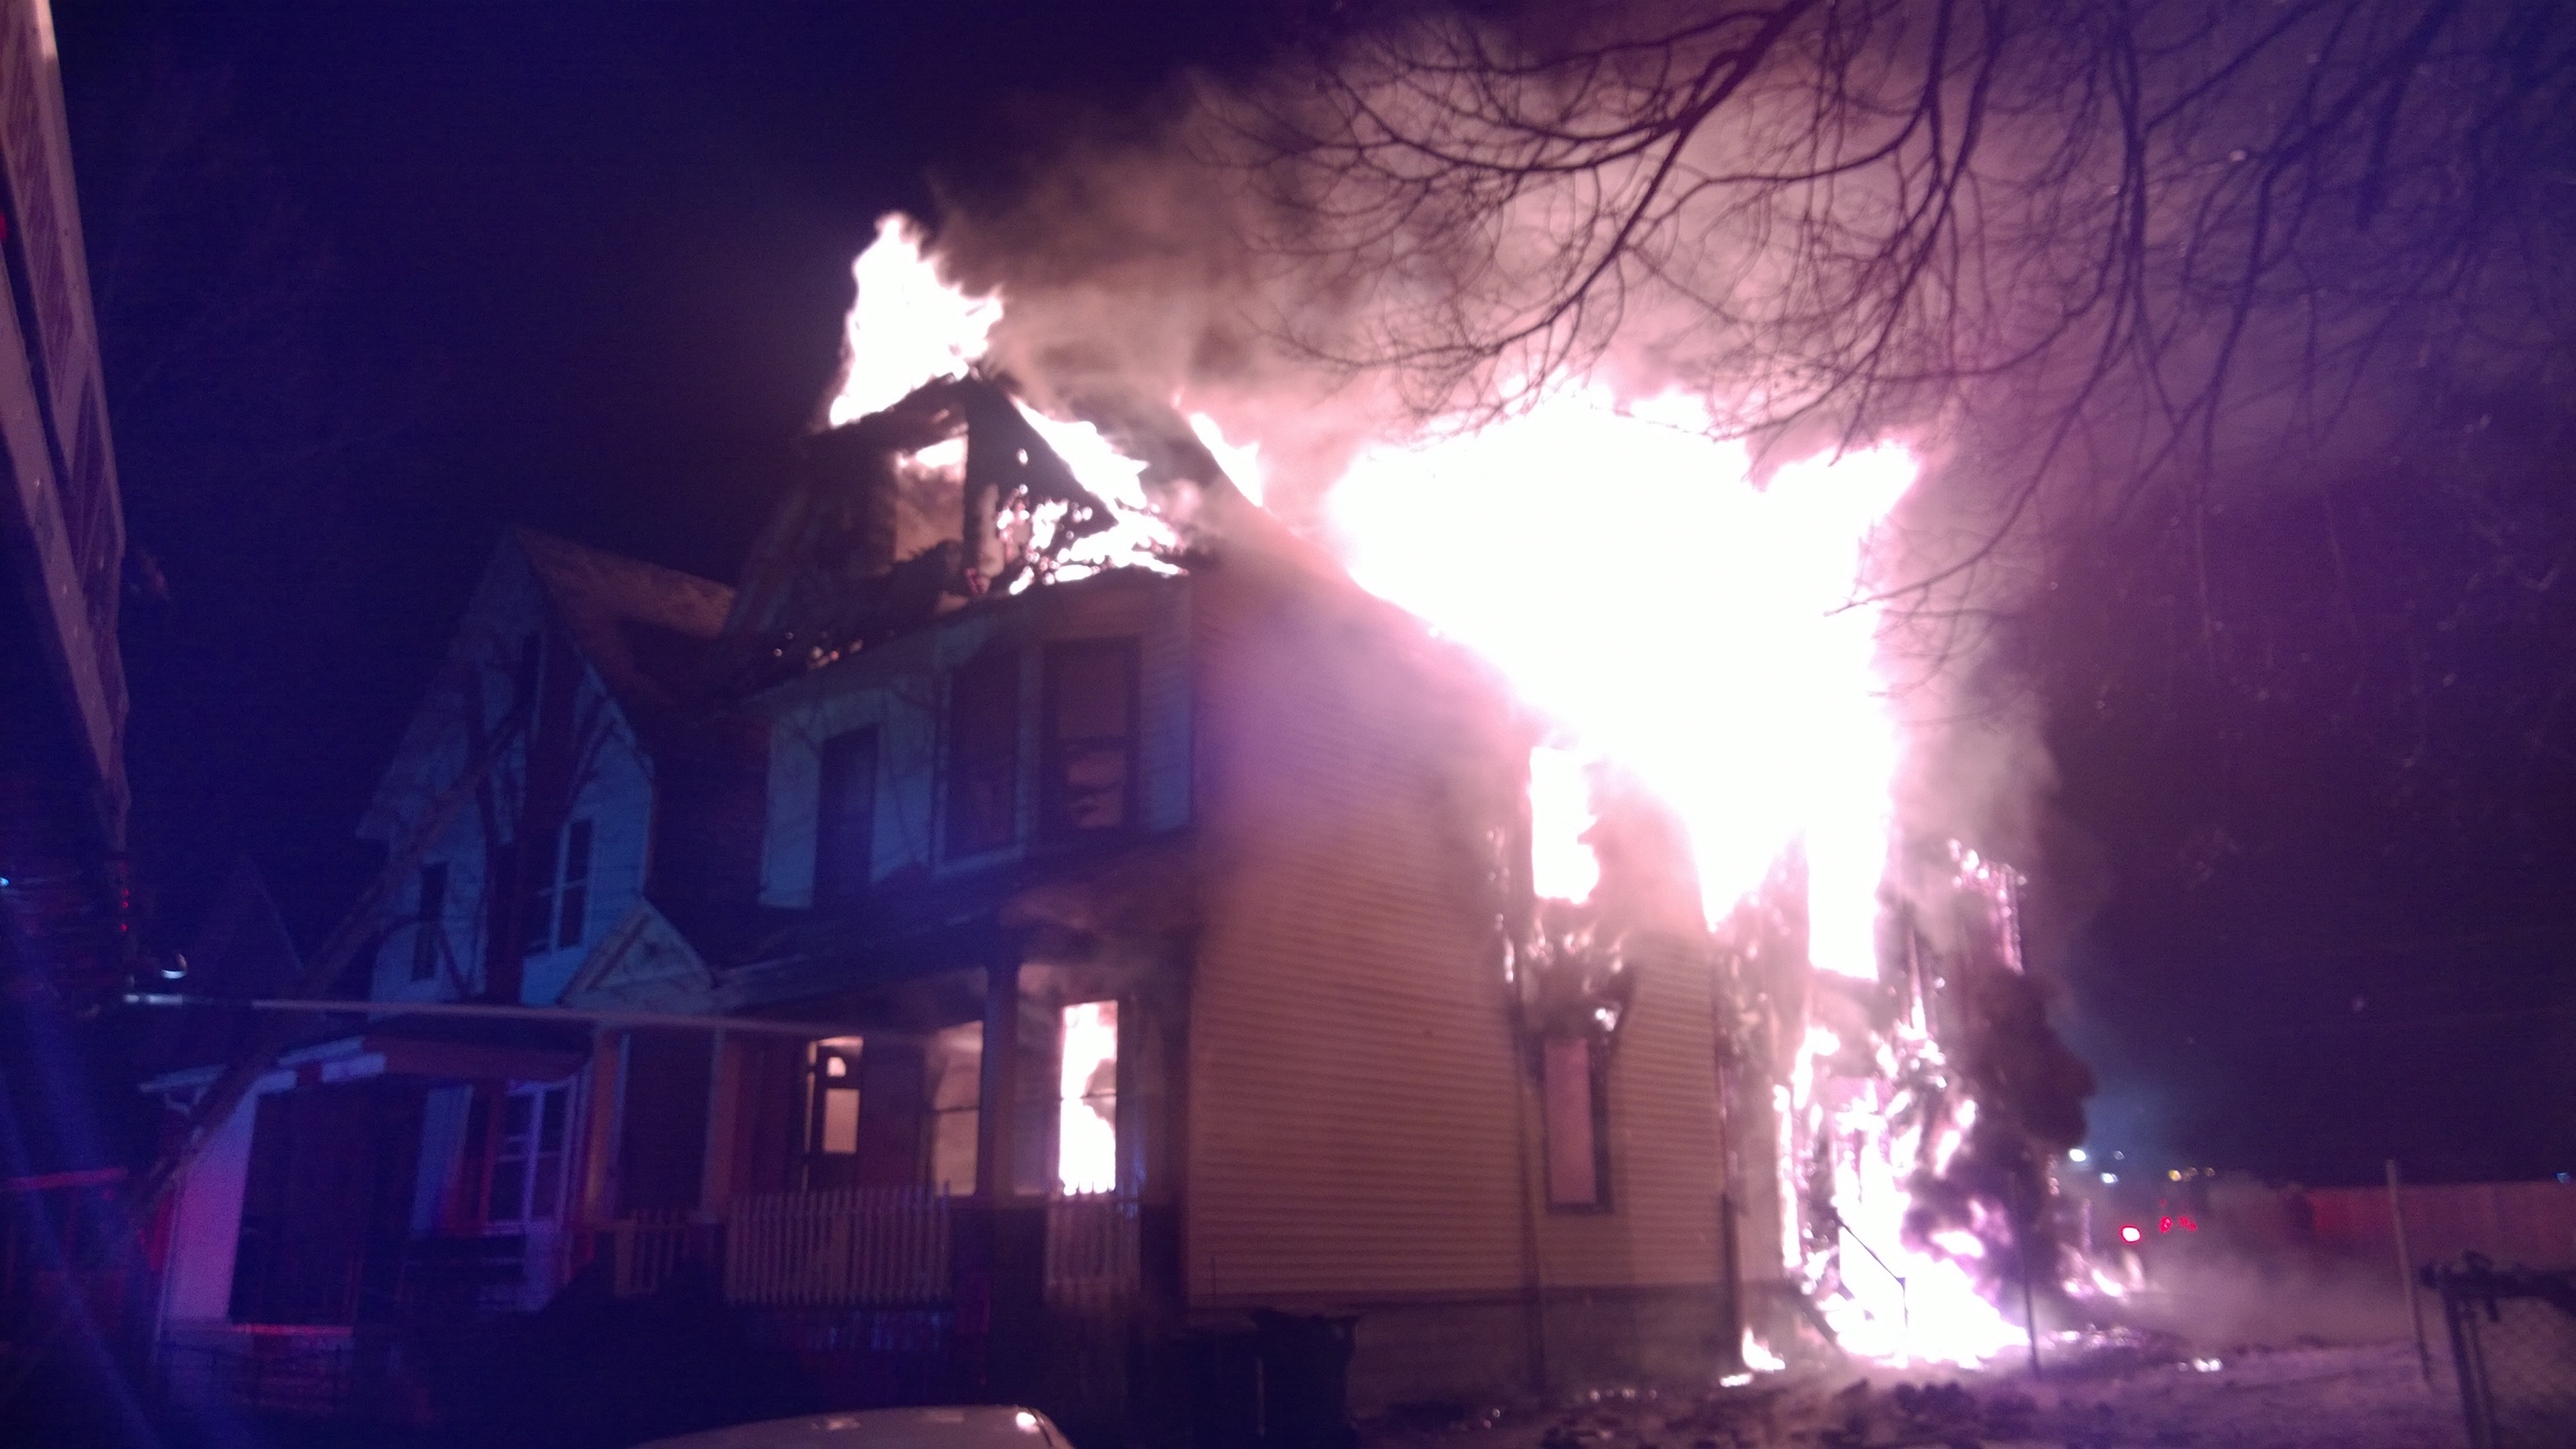 Flames shoot from a home on South Division early Tuesday Feb. 2, 2016. (David Kazmierczak/Special to The News)